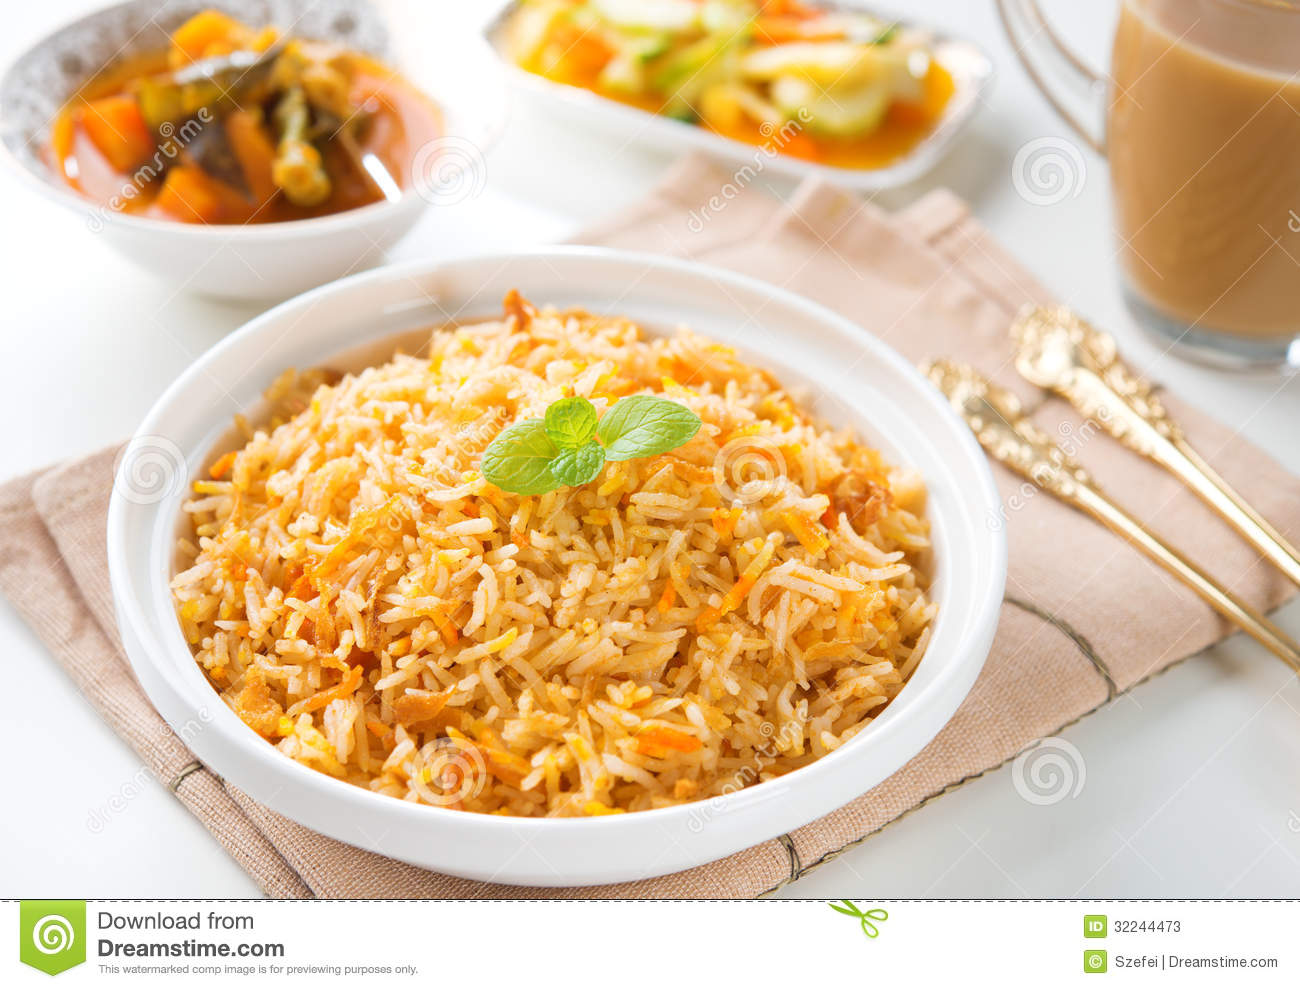 Indian vegetarian biryani rice stock photos image 32244473 for Art of indian cuisine